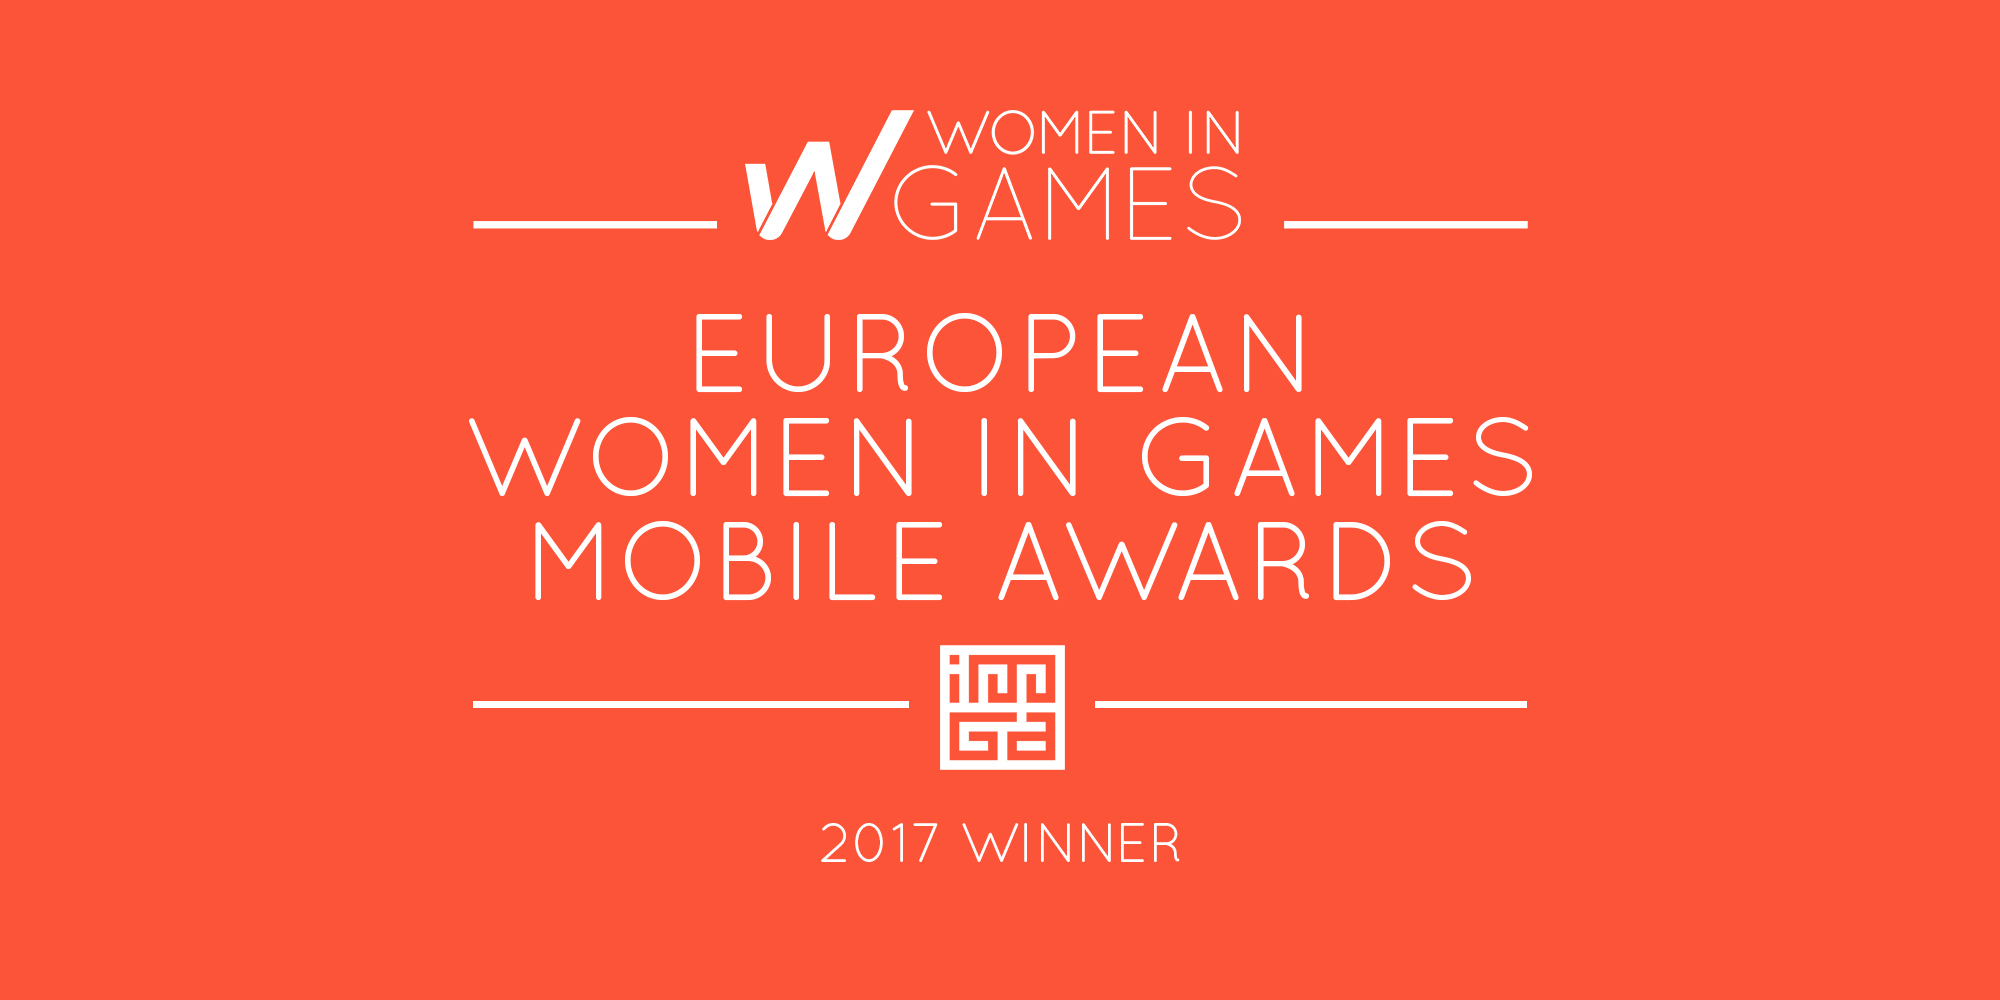 EWIG_2017_Mobile_Awards_2017_Winner.jpg